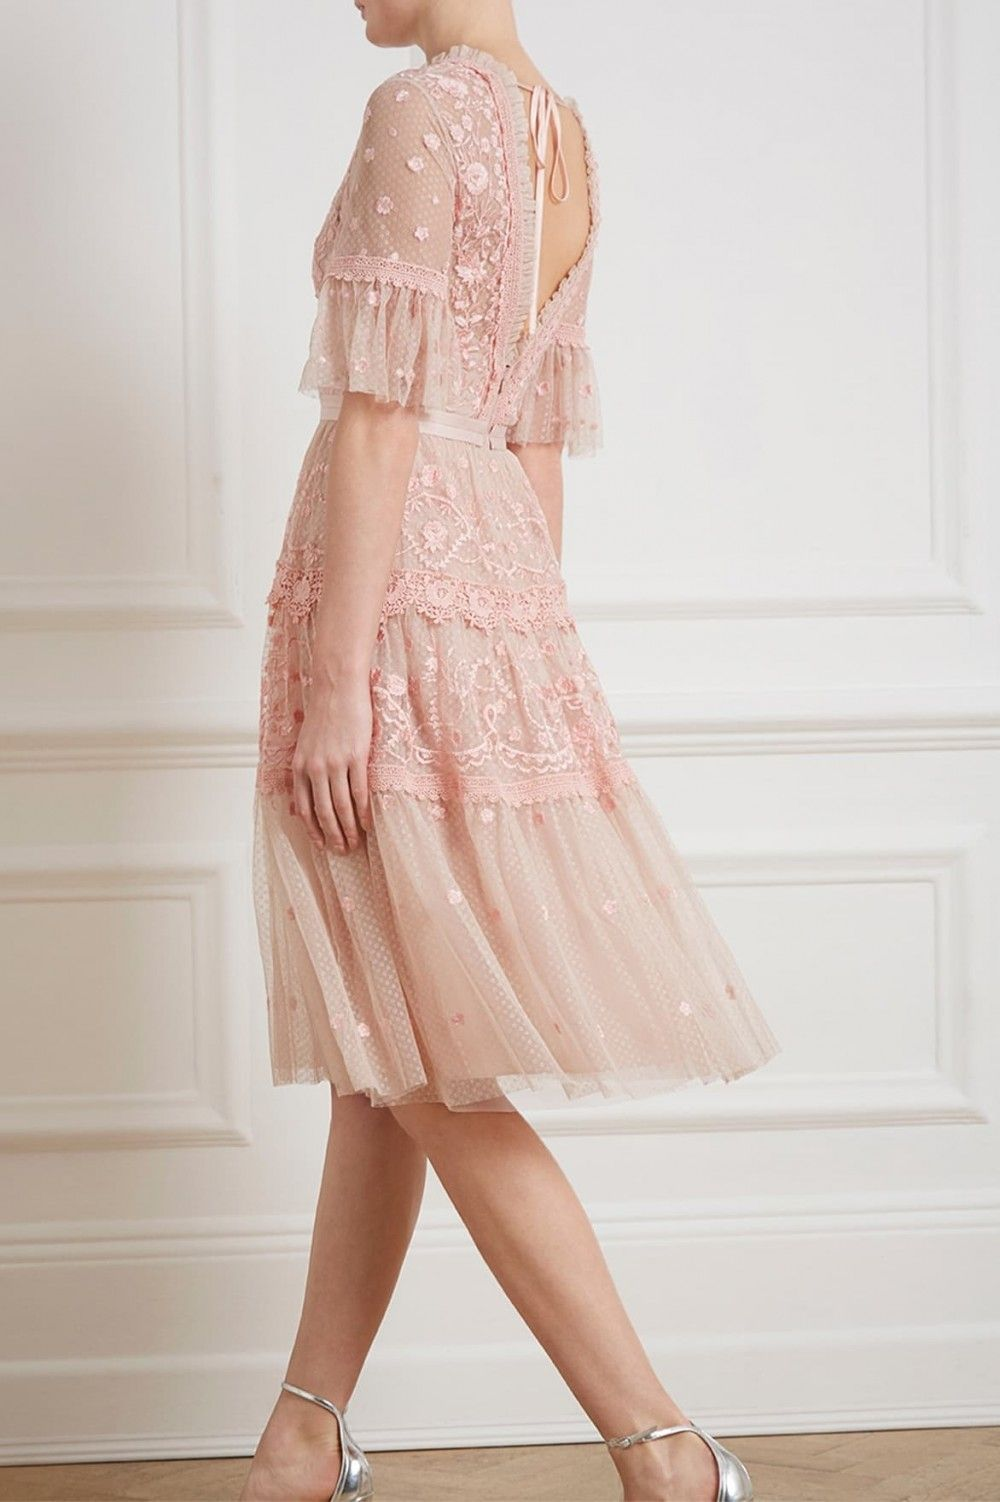 bc0e969f5fca Midsummer Lace Dress in Rose Quartz from Needle & Thread's New Season  Collection.